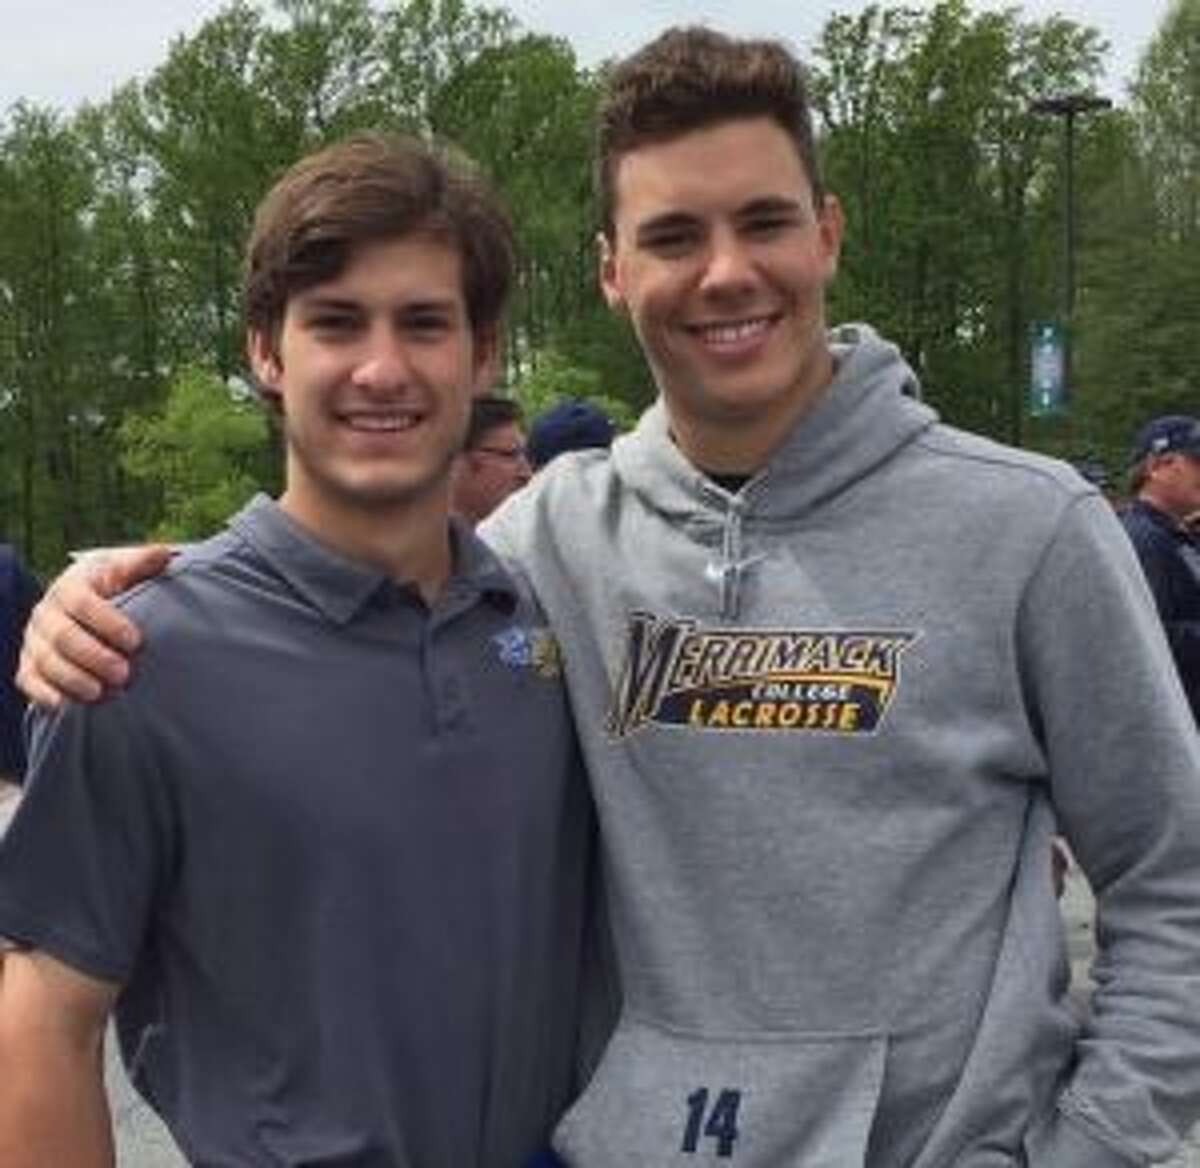 Danny Forren (Limestone) and Jacob Howes (Merrimack) will meet for the NCAA Division II title on Sunday.